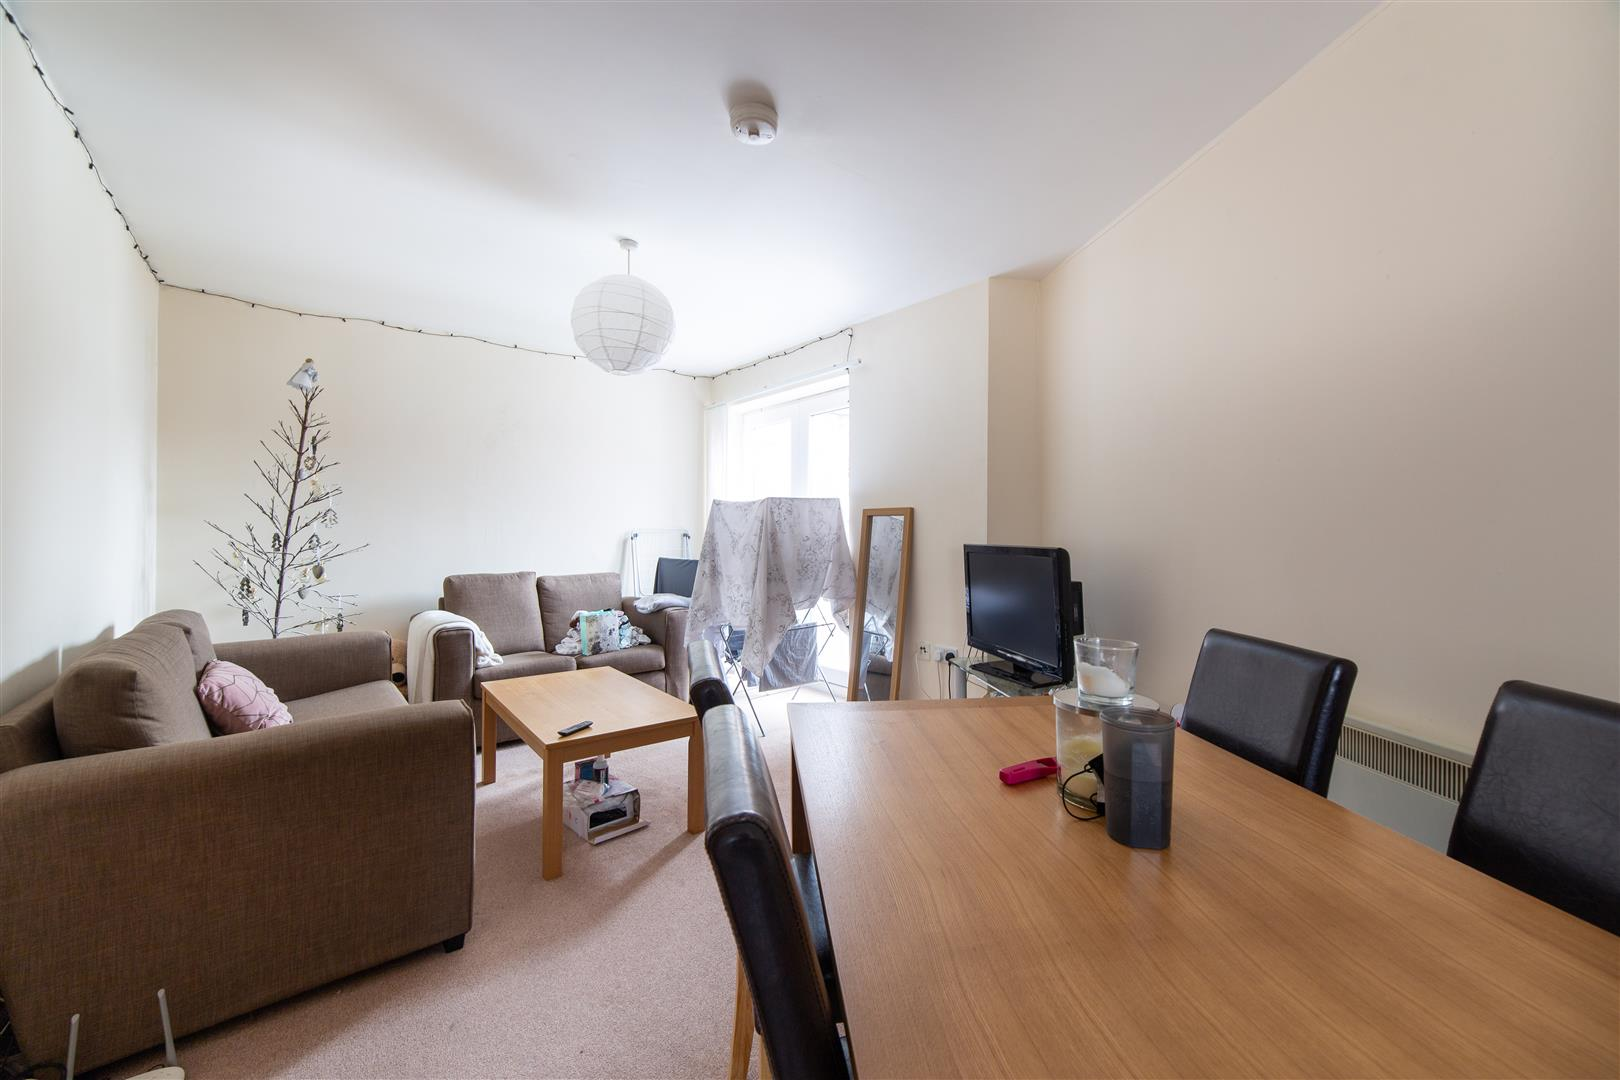 5 bed apartment to rent in Newcastle Upon Tyne, NE2 1BE, NE2